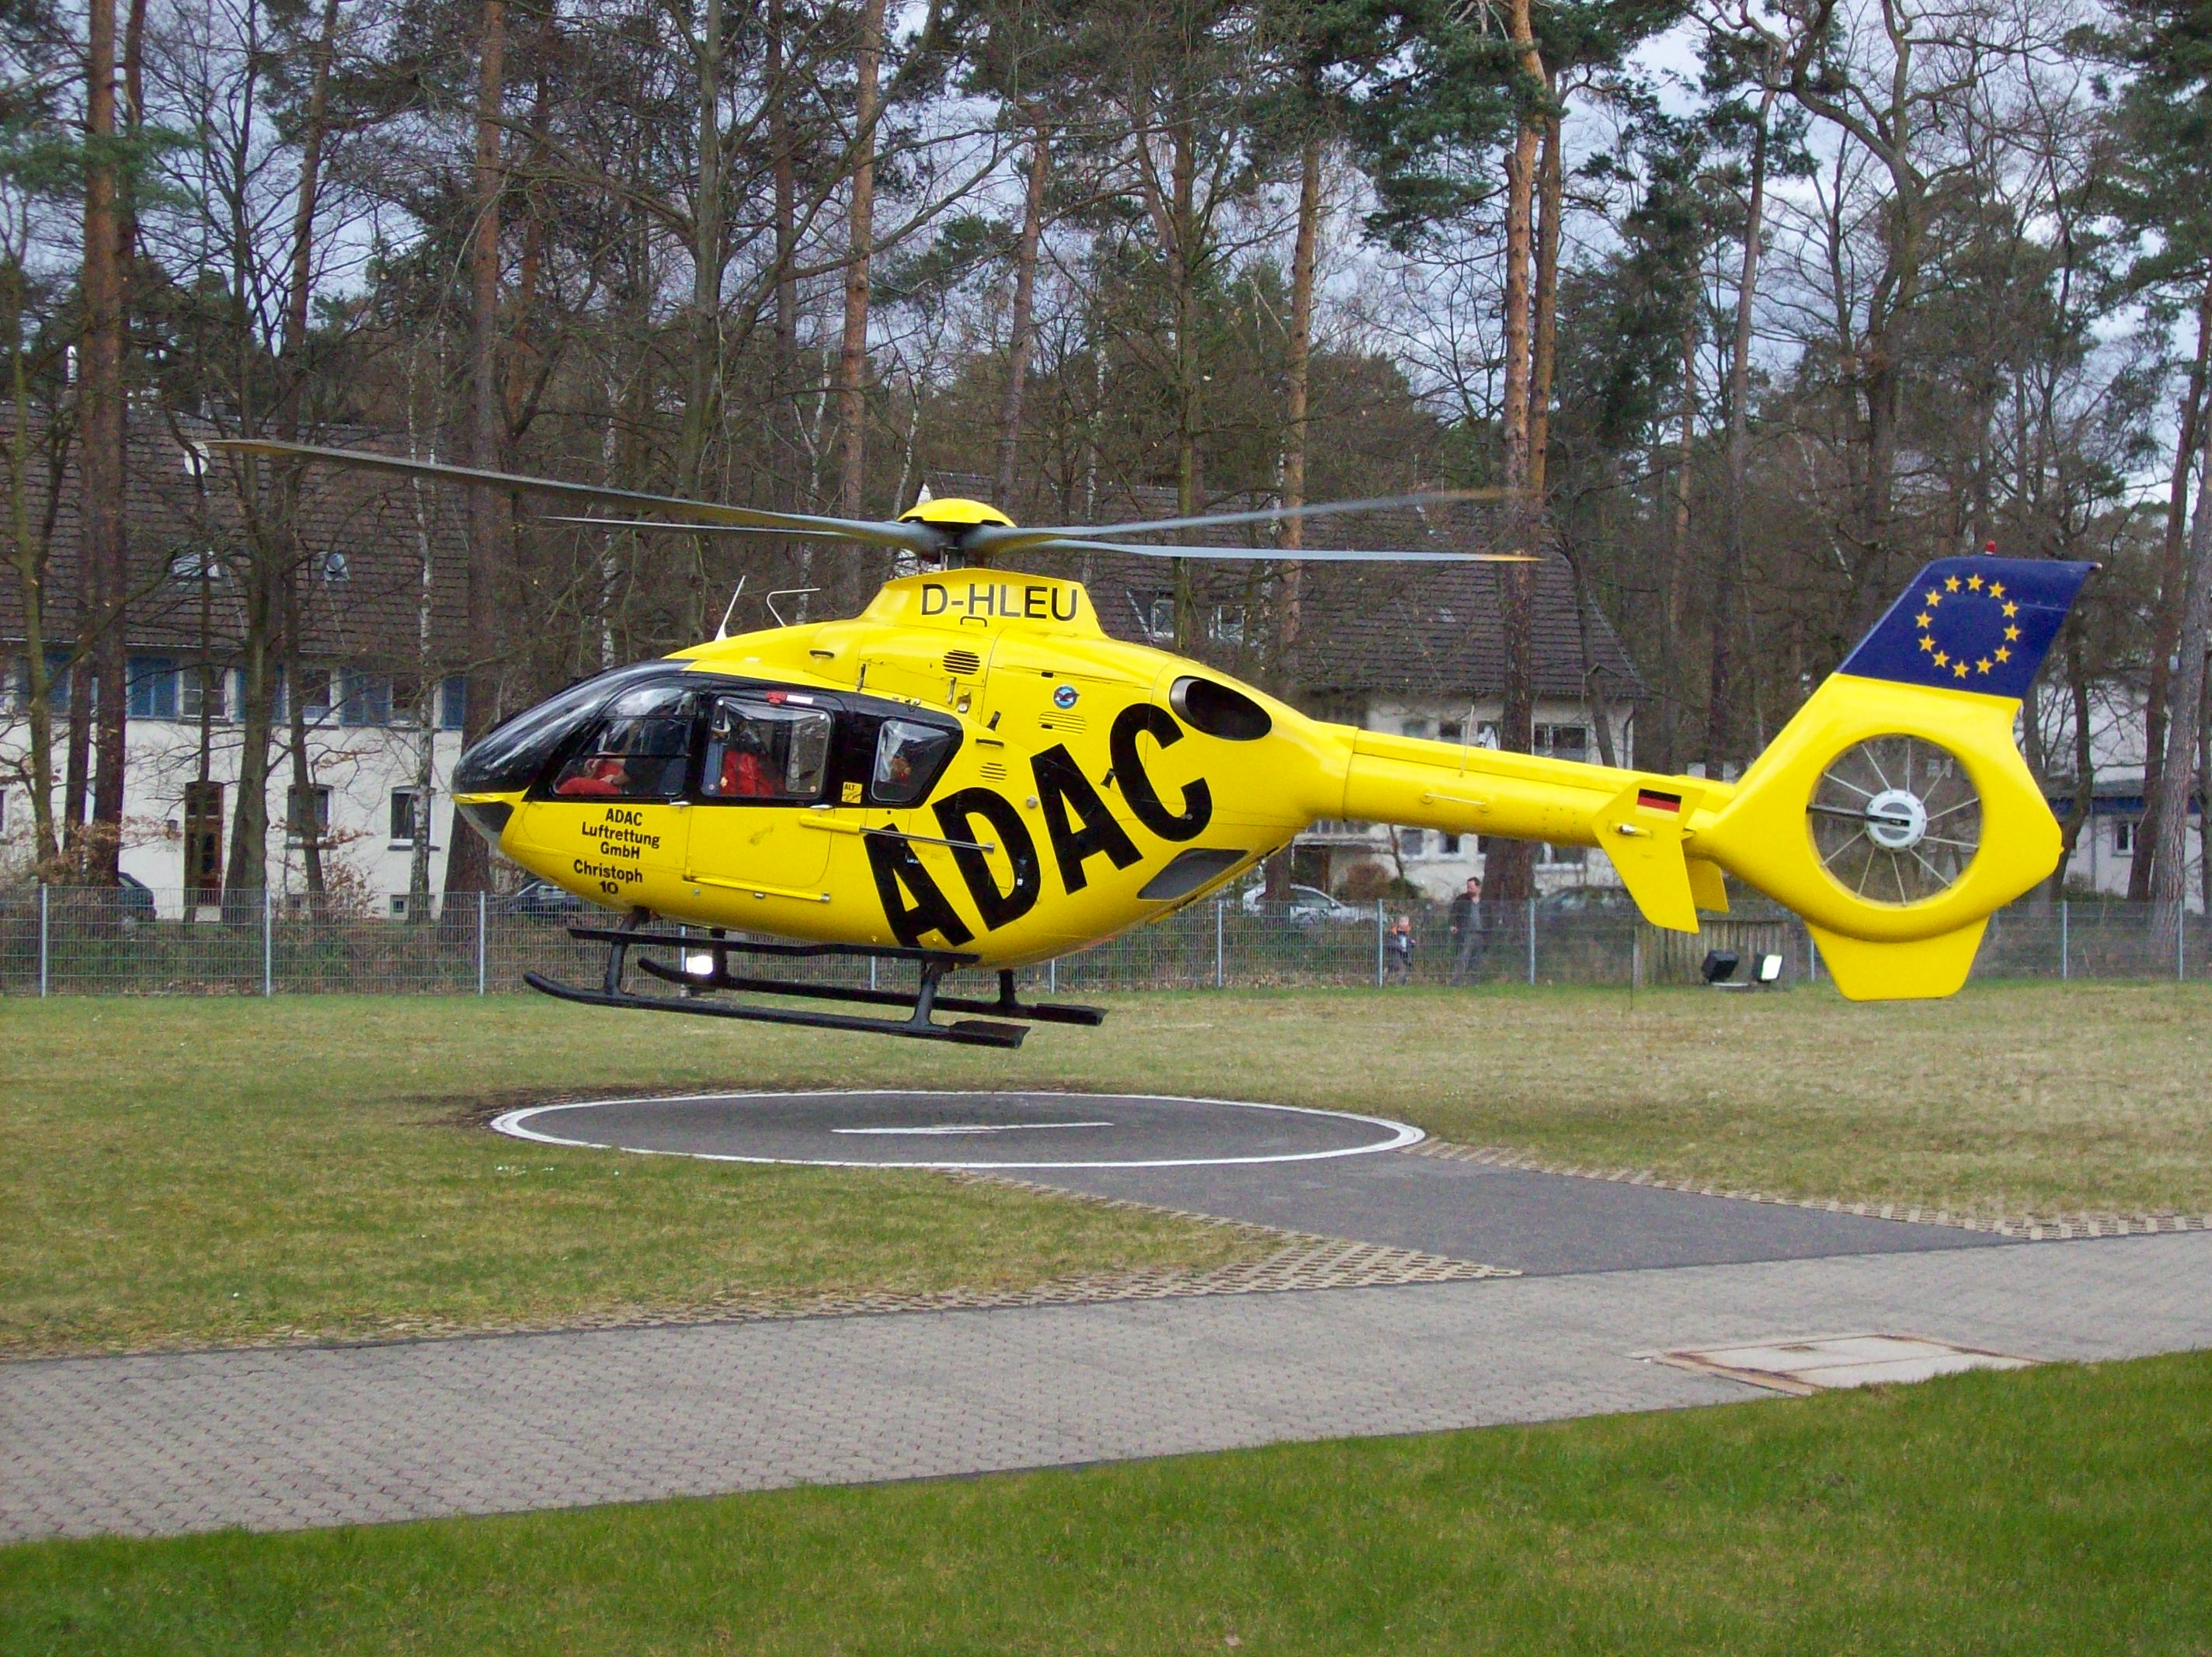 https://upload.wikimedia.org/wikipedia/commons/3/36/Helicopter_EC135_taking_off_from_Bonn_university_clinic_helipad.JPG